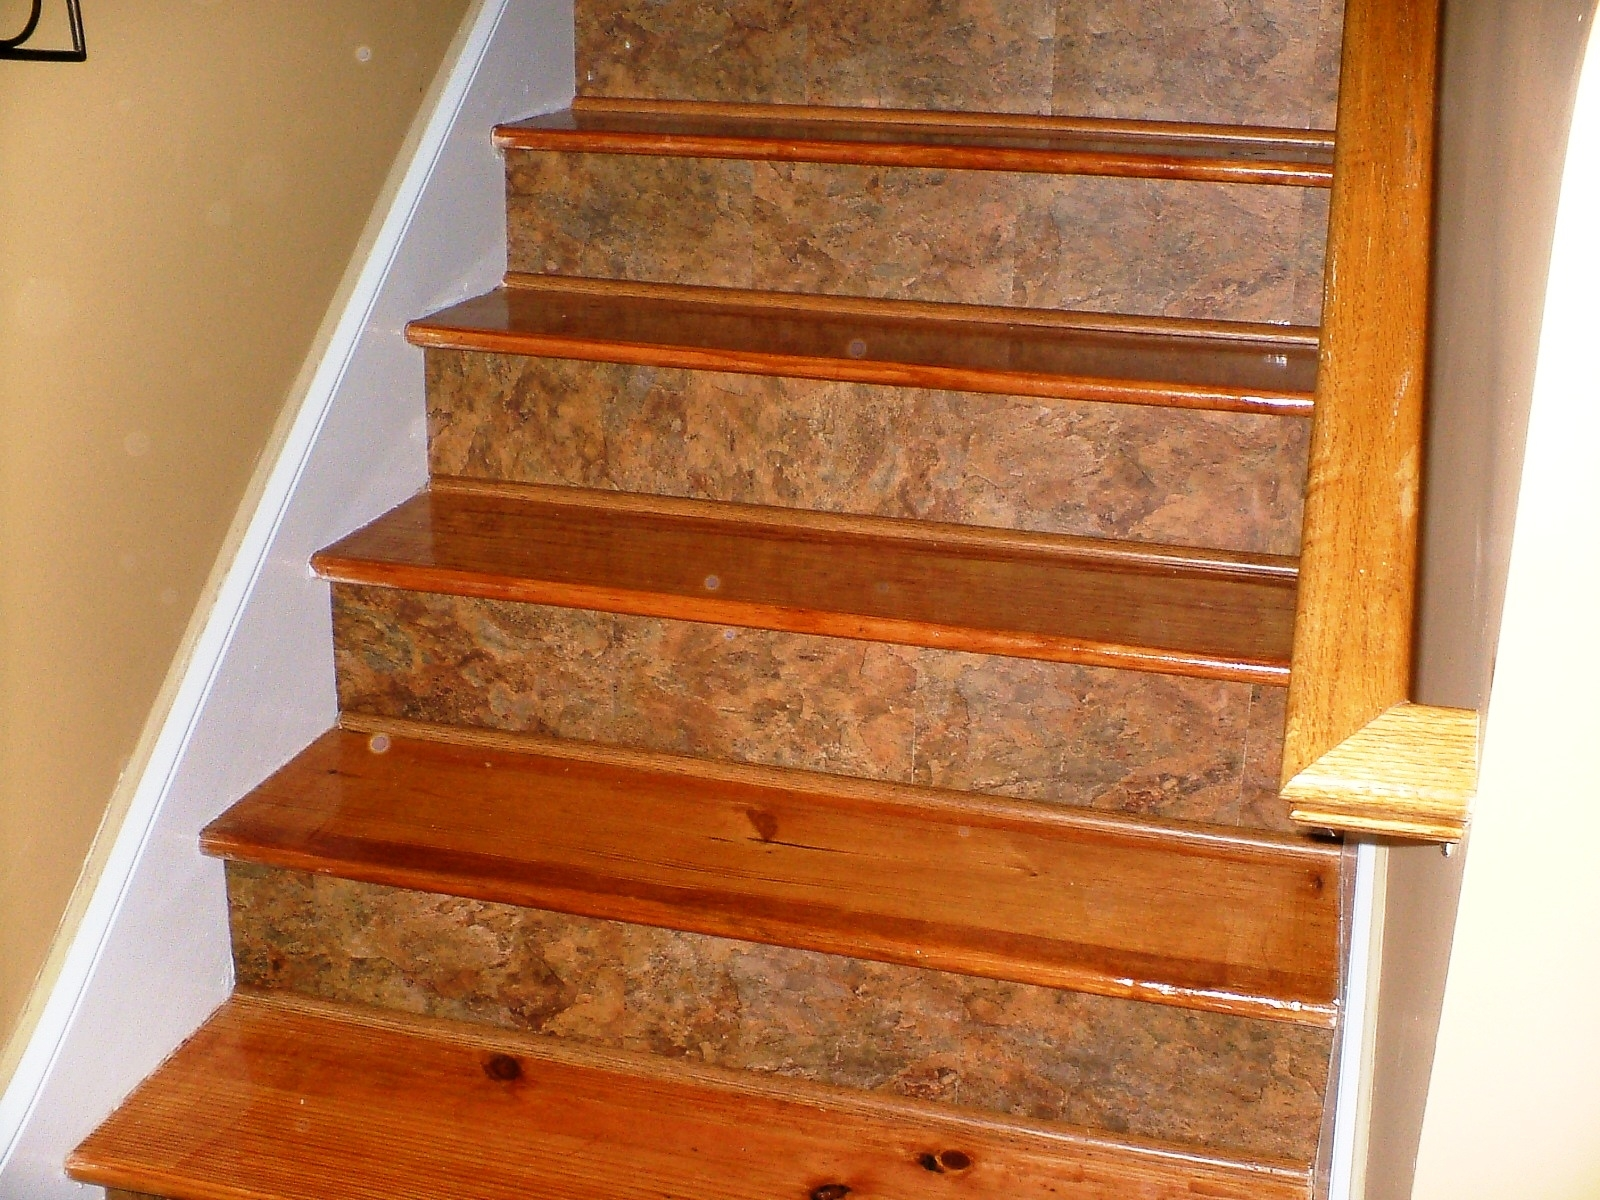 Rug Carpet Stair Treads Lowes Rubber Stair Treads Stair Tread For Stair Tread Rug Covers (#15 of 20)